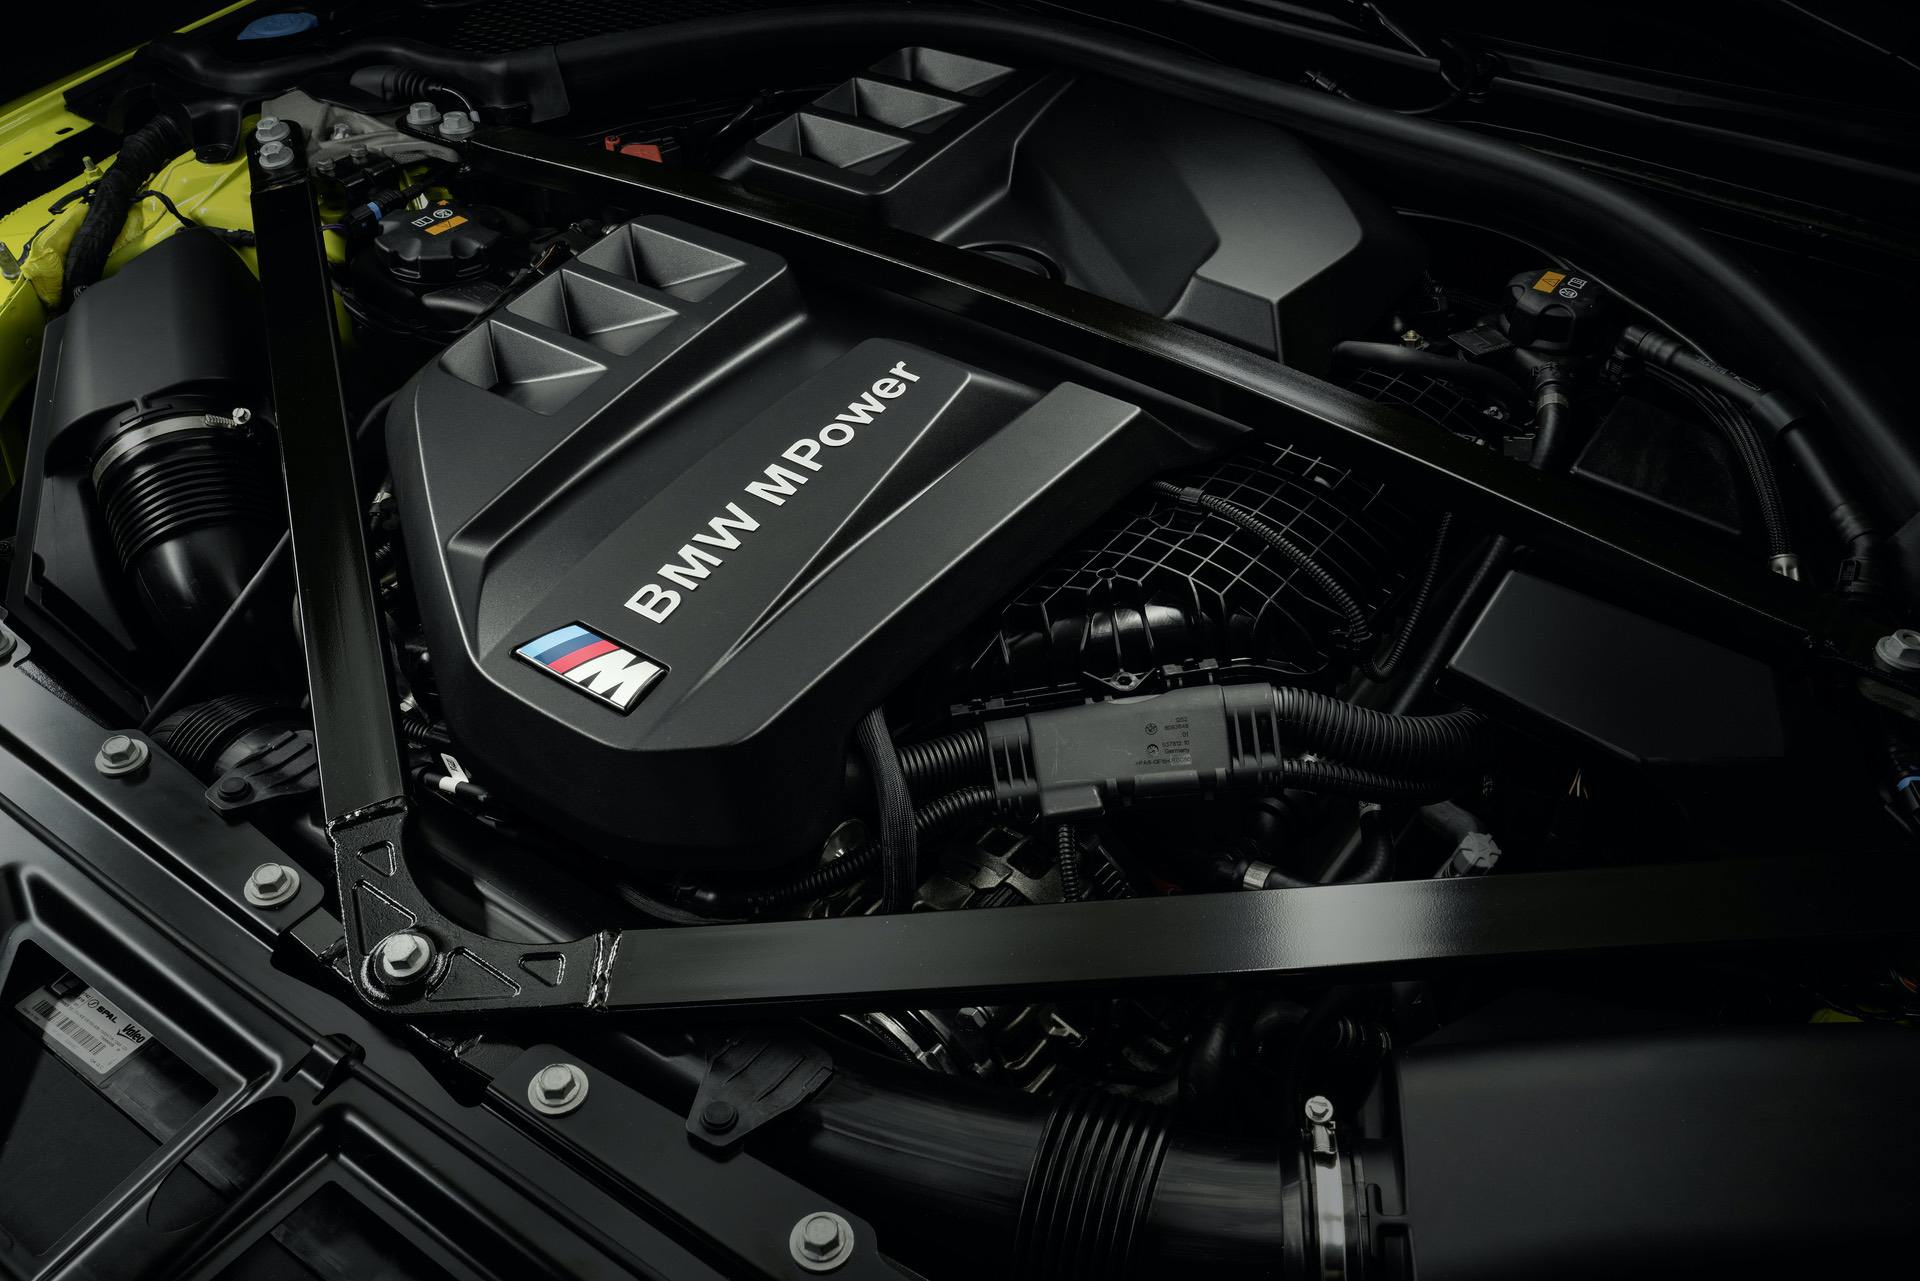 2021 Bmw M3 Sedan And M4 Coupe Engine And Drivetrain Highlights